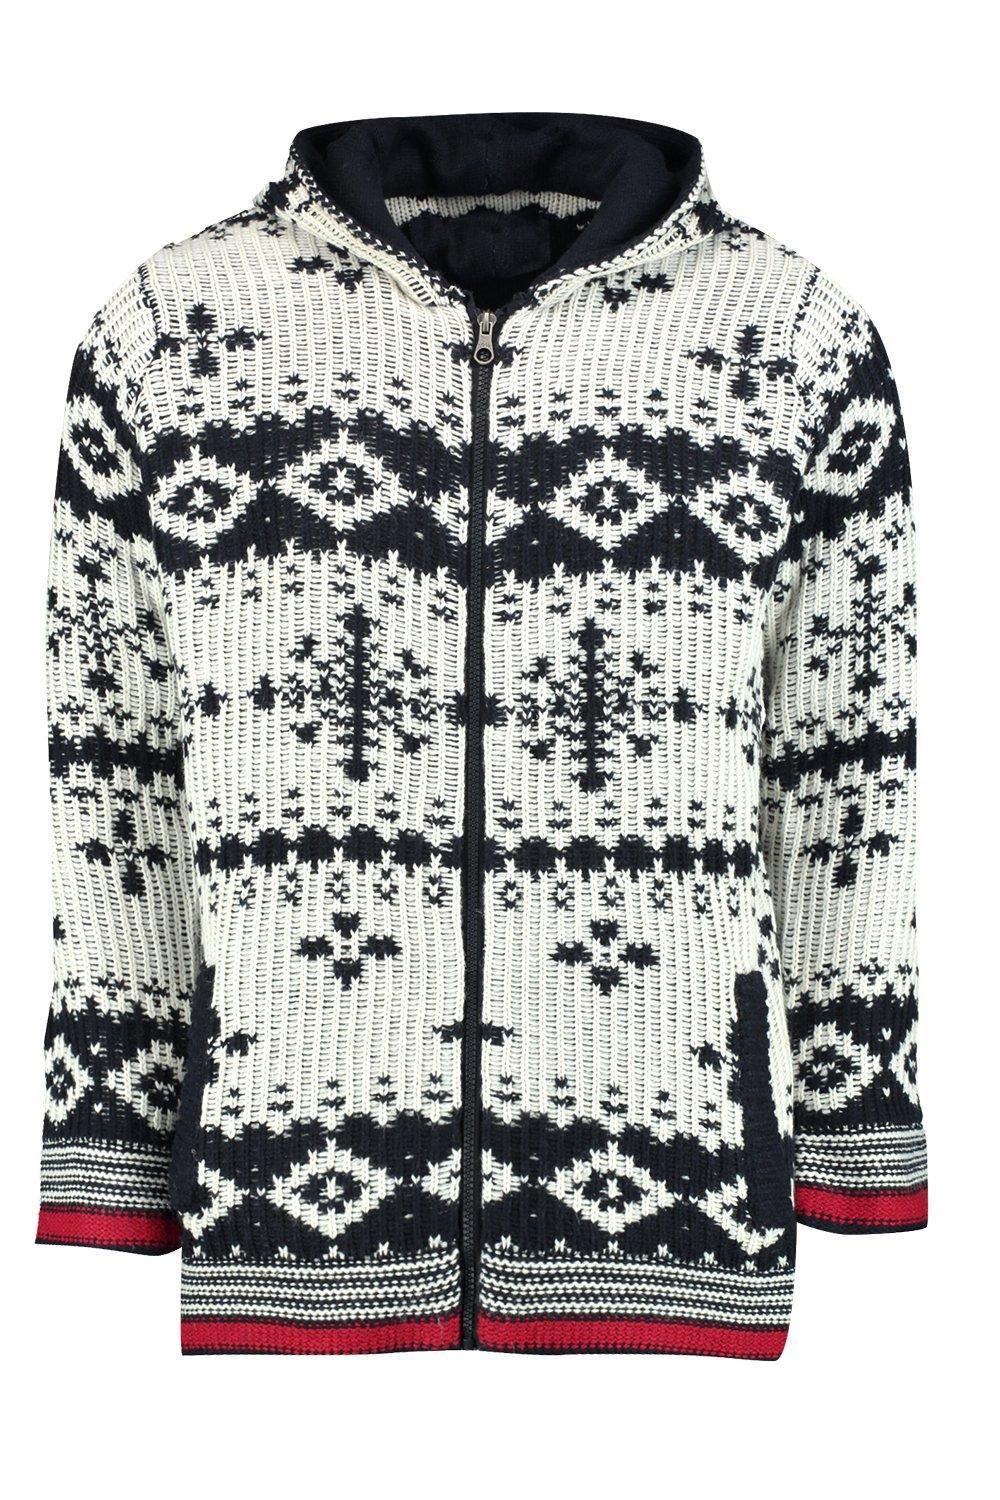 Boohoo Synthetic Chunky Knitted Snowflake Hooded Jacket for Men